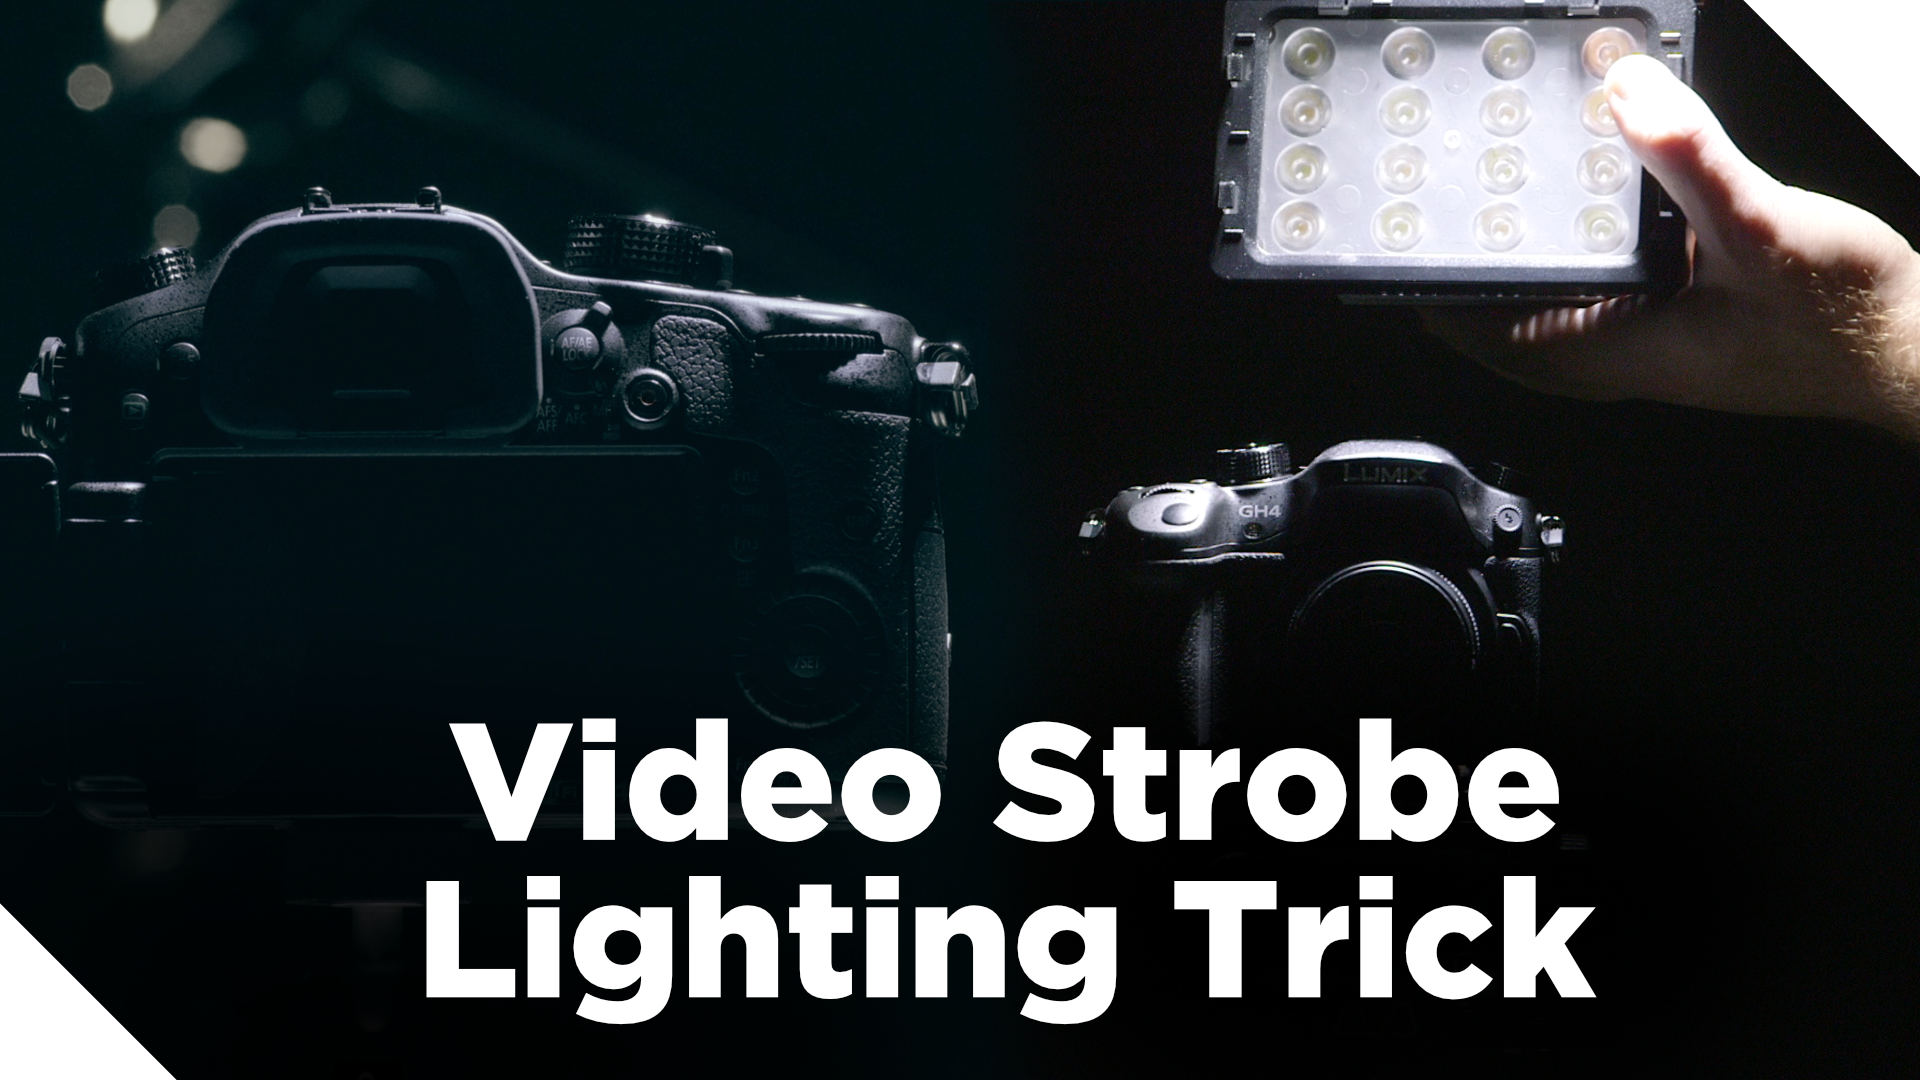 Sweet Video Strobe Lighting Trick